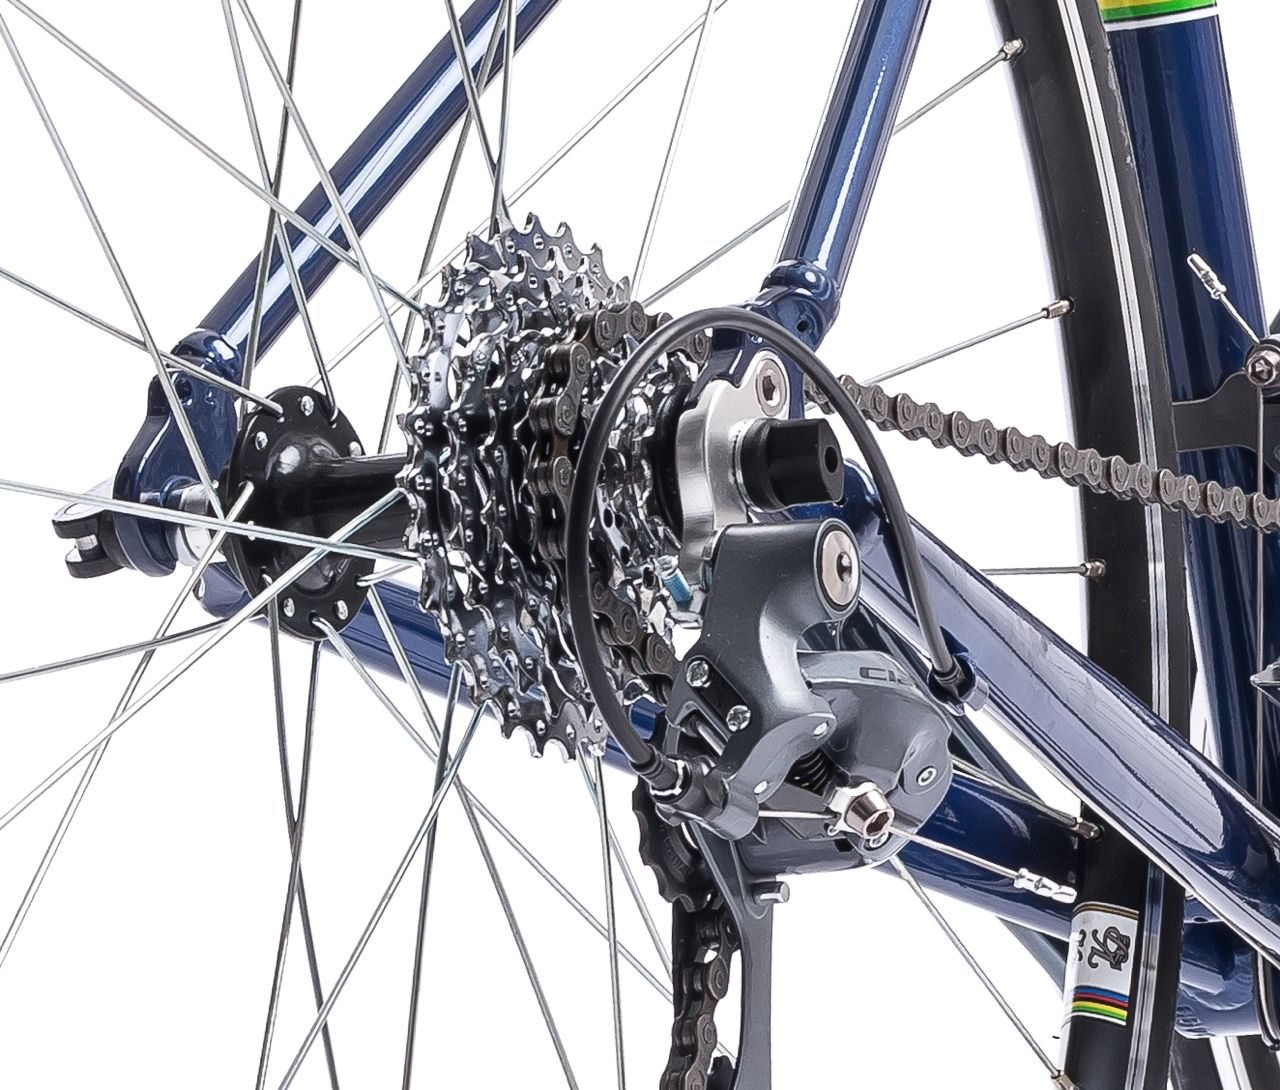 The eight-speed SRAM cassette gives a total of 16 gearing options on the Initial